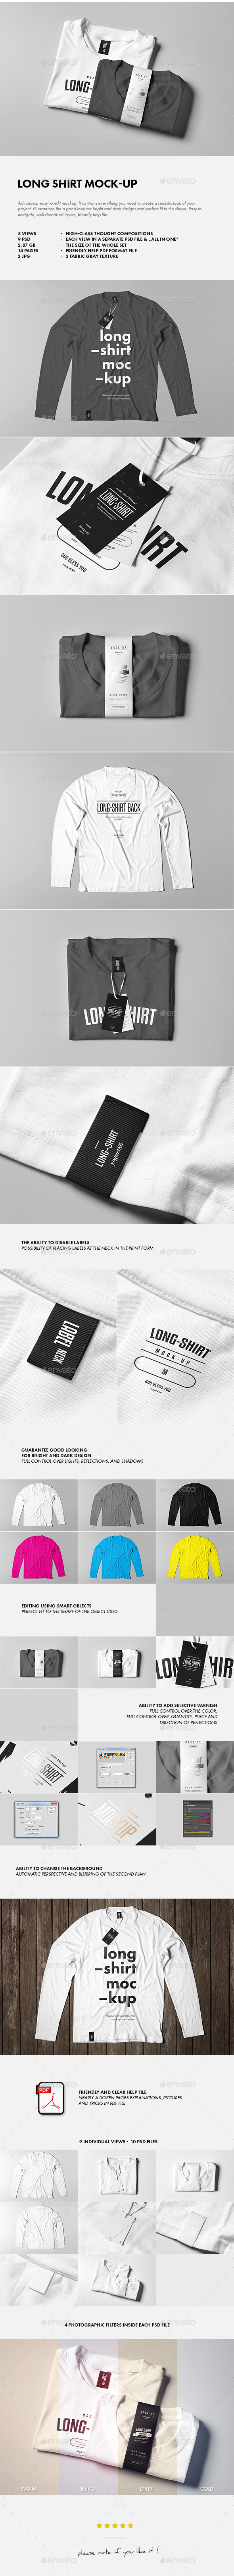 graphicriver_long_shirt_mock_up_14738798